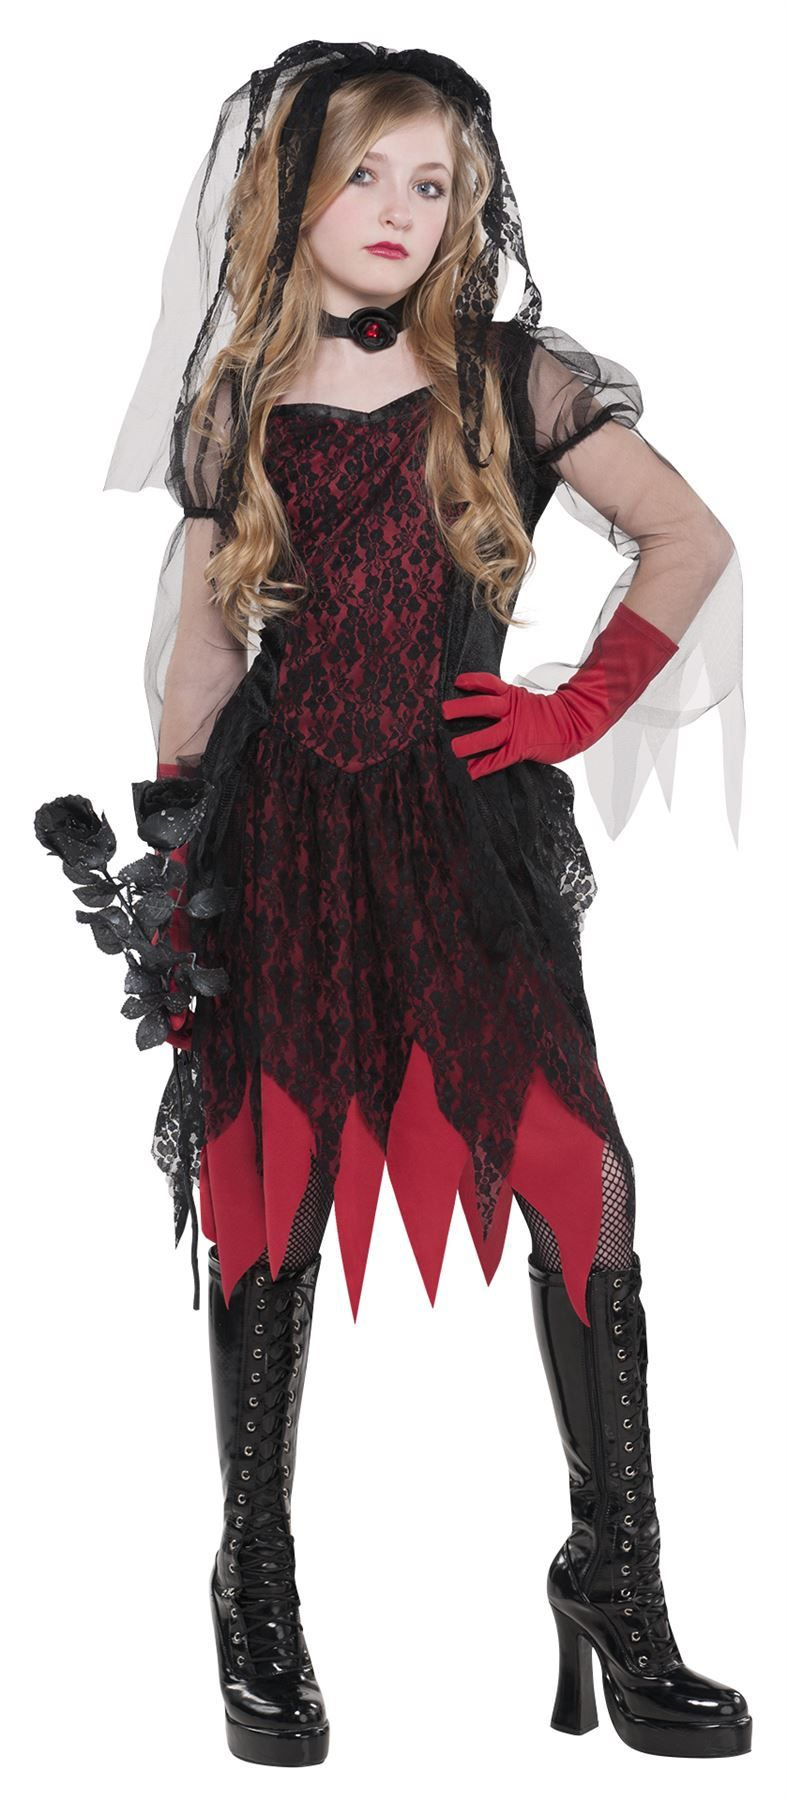 1c64cf9f855 Details about Children Teen Deadly Wed Zombie Costume Ghost Bride ...